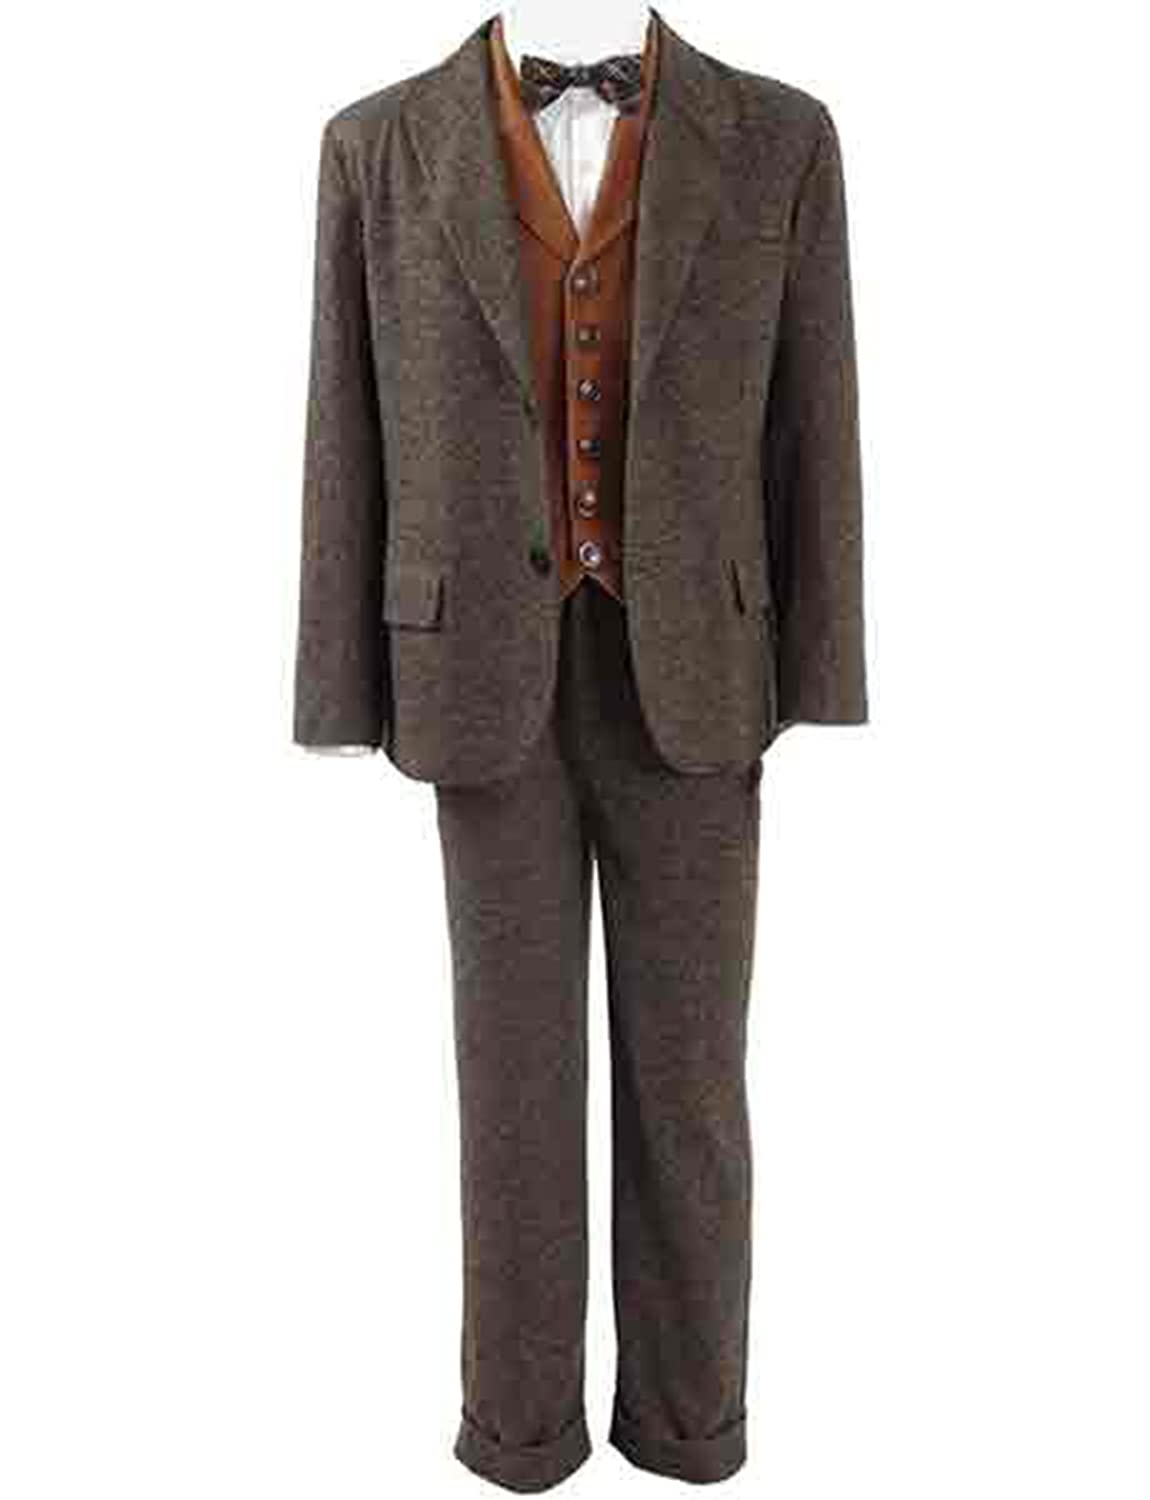 1920s Men's Costumes: Gatsby, Gangster, Peaky Blinders, Mobster, Mafia Fantastic Beasts Newt Scamander 3 Piece Brown Suit $140.00 AT vintagedancer.com